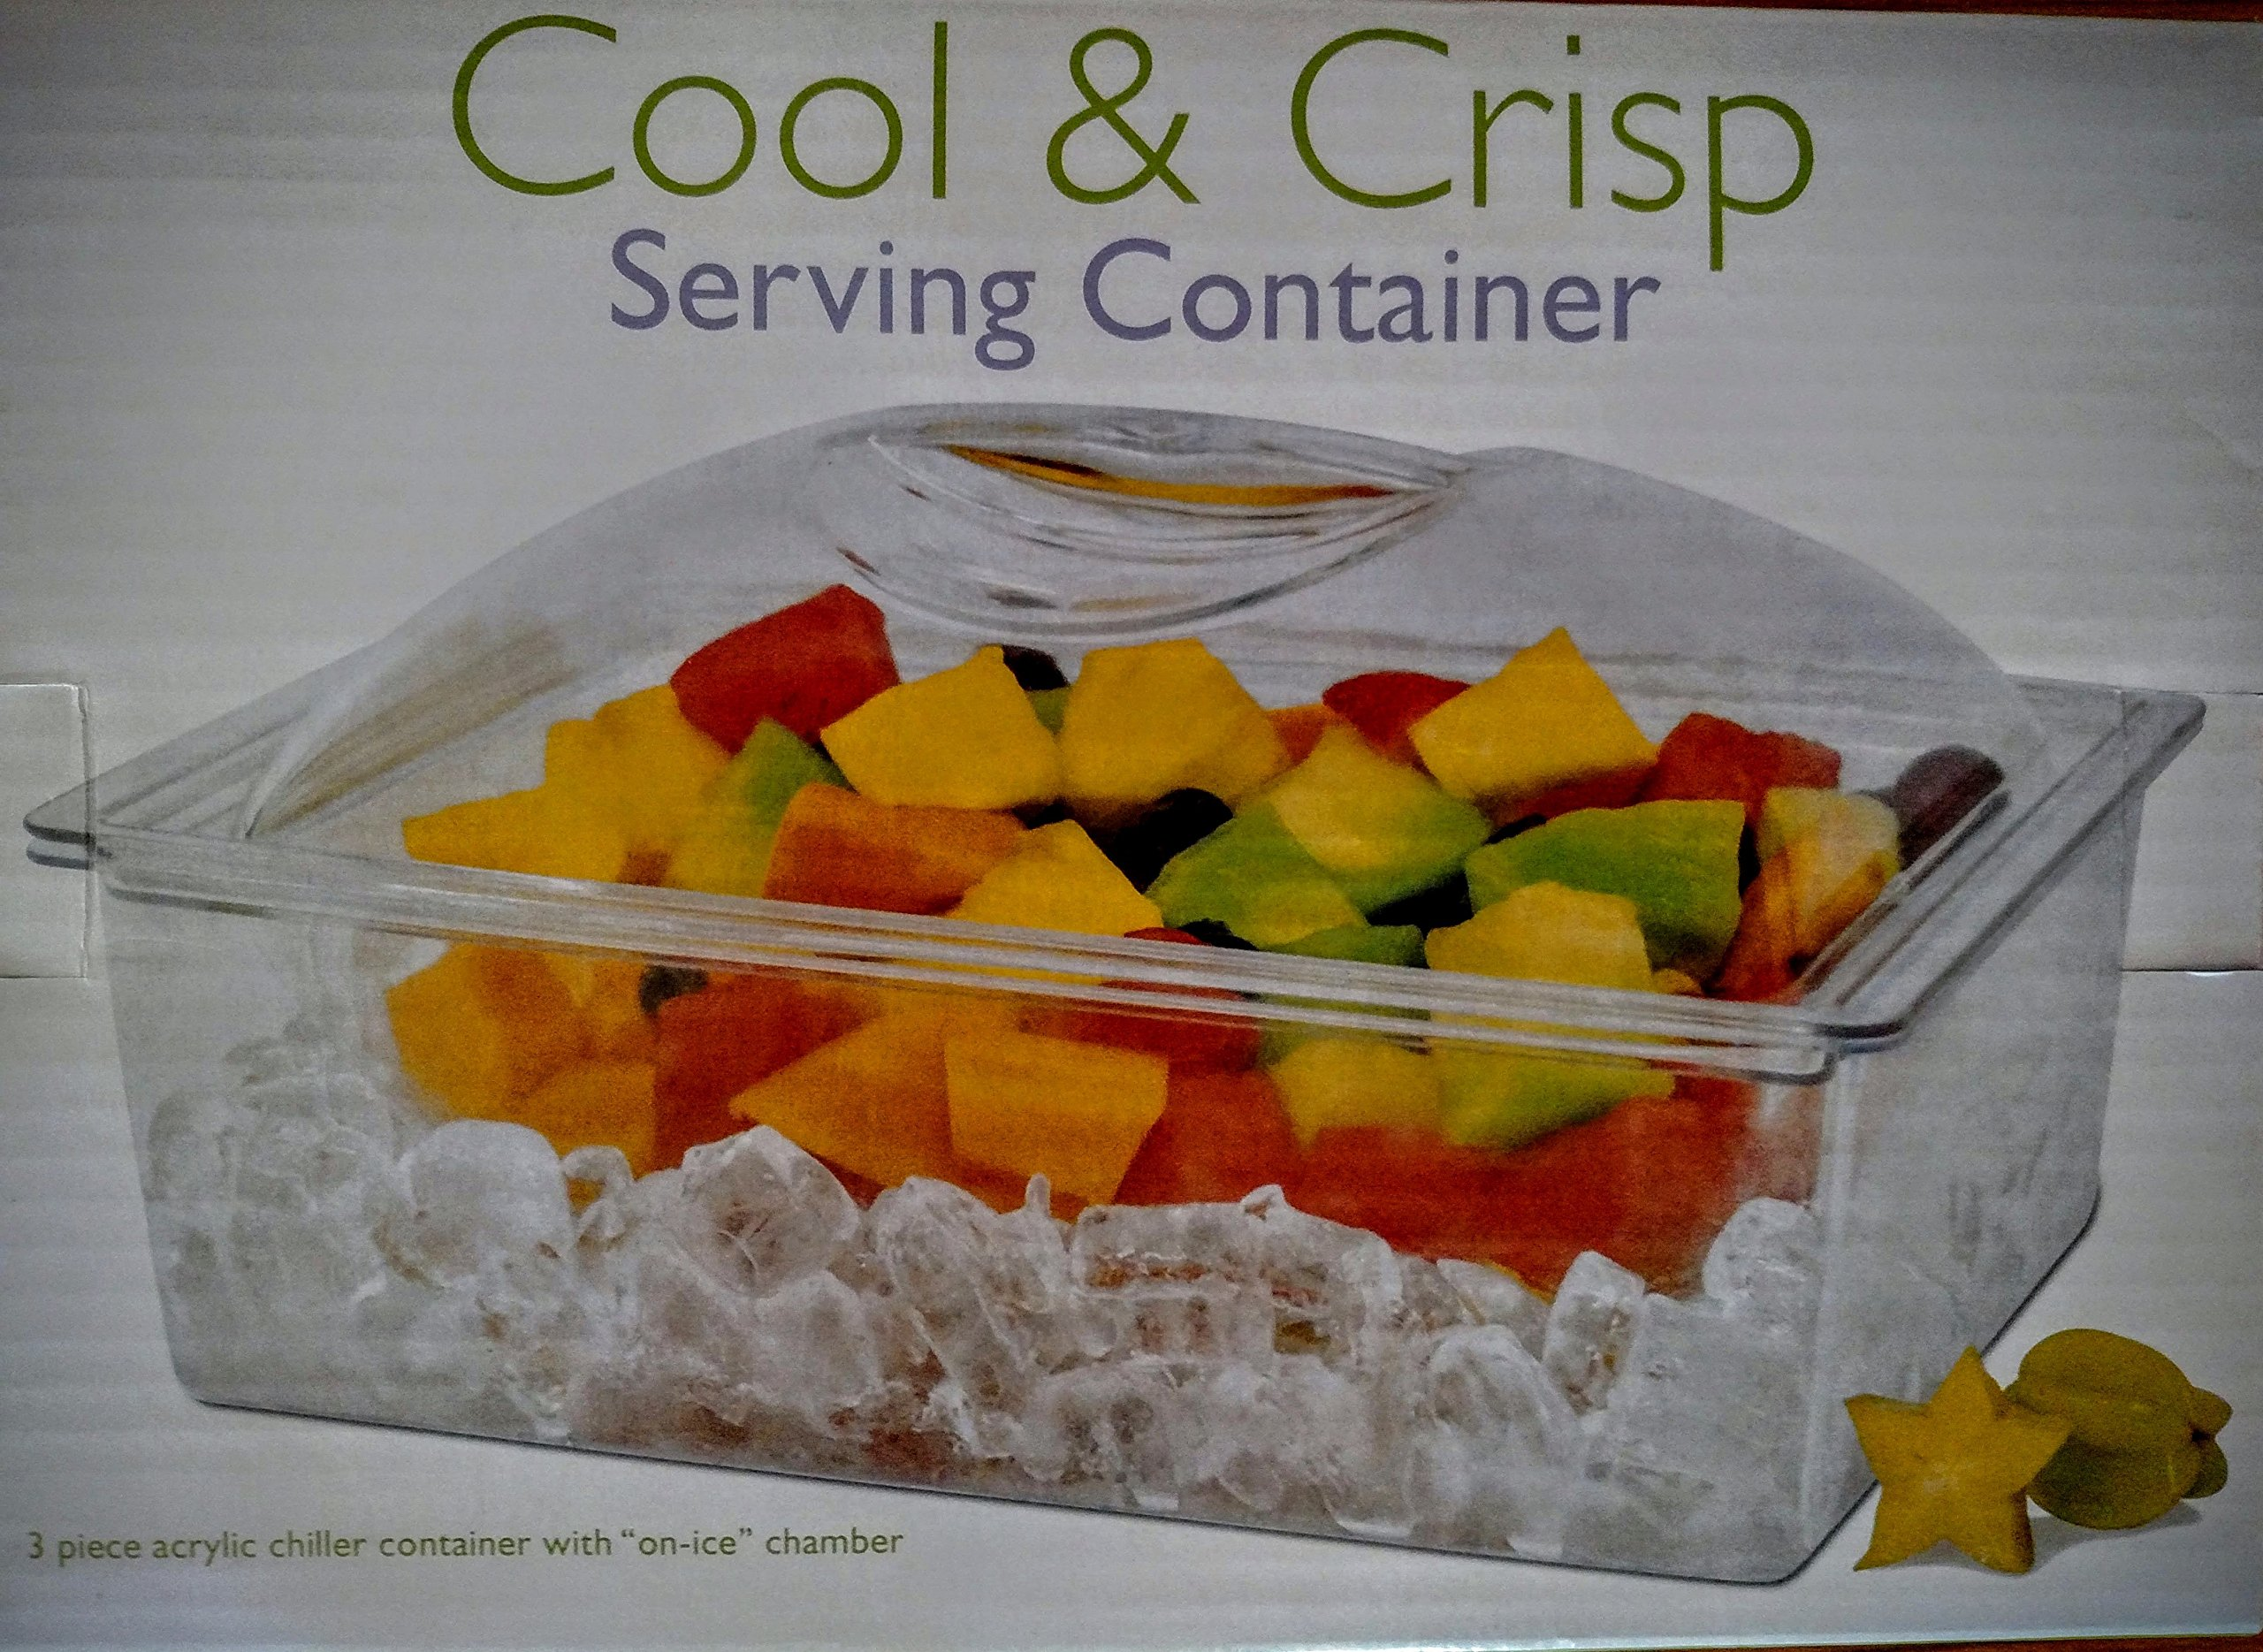 Cool and Crisp Acrylic Serving Container 6 quart/with ice compartment